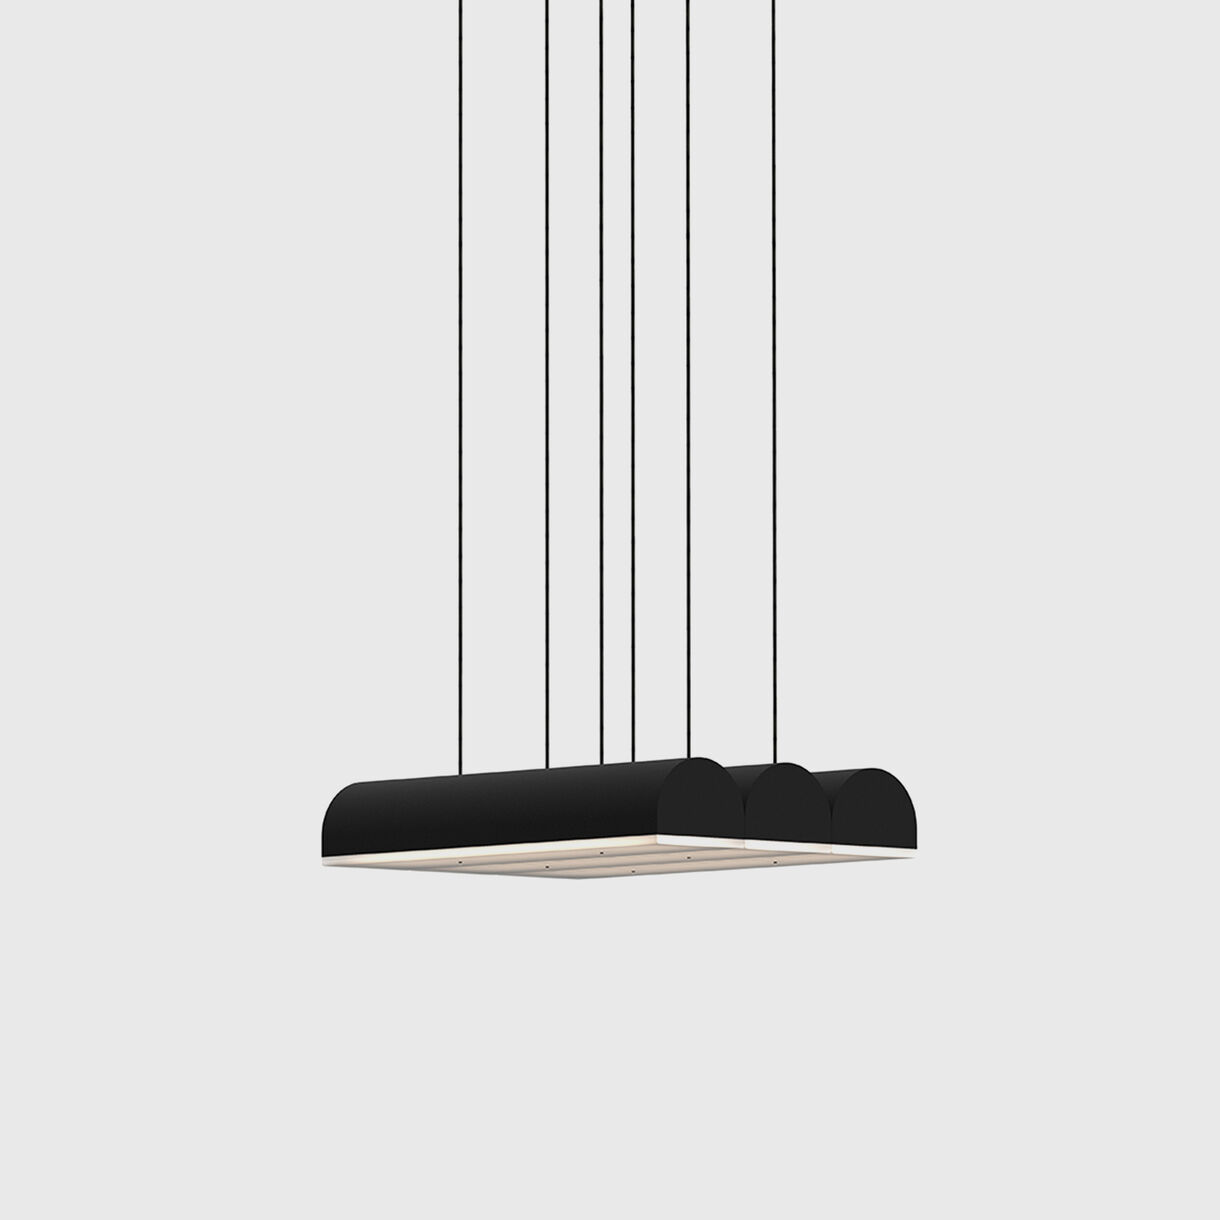 Hutchison 03 Pendant Lamp, Black